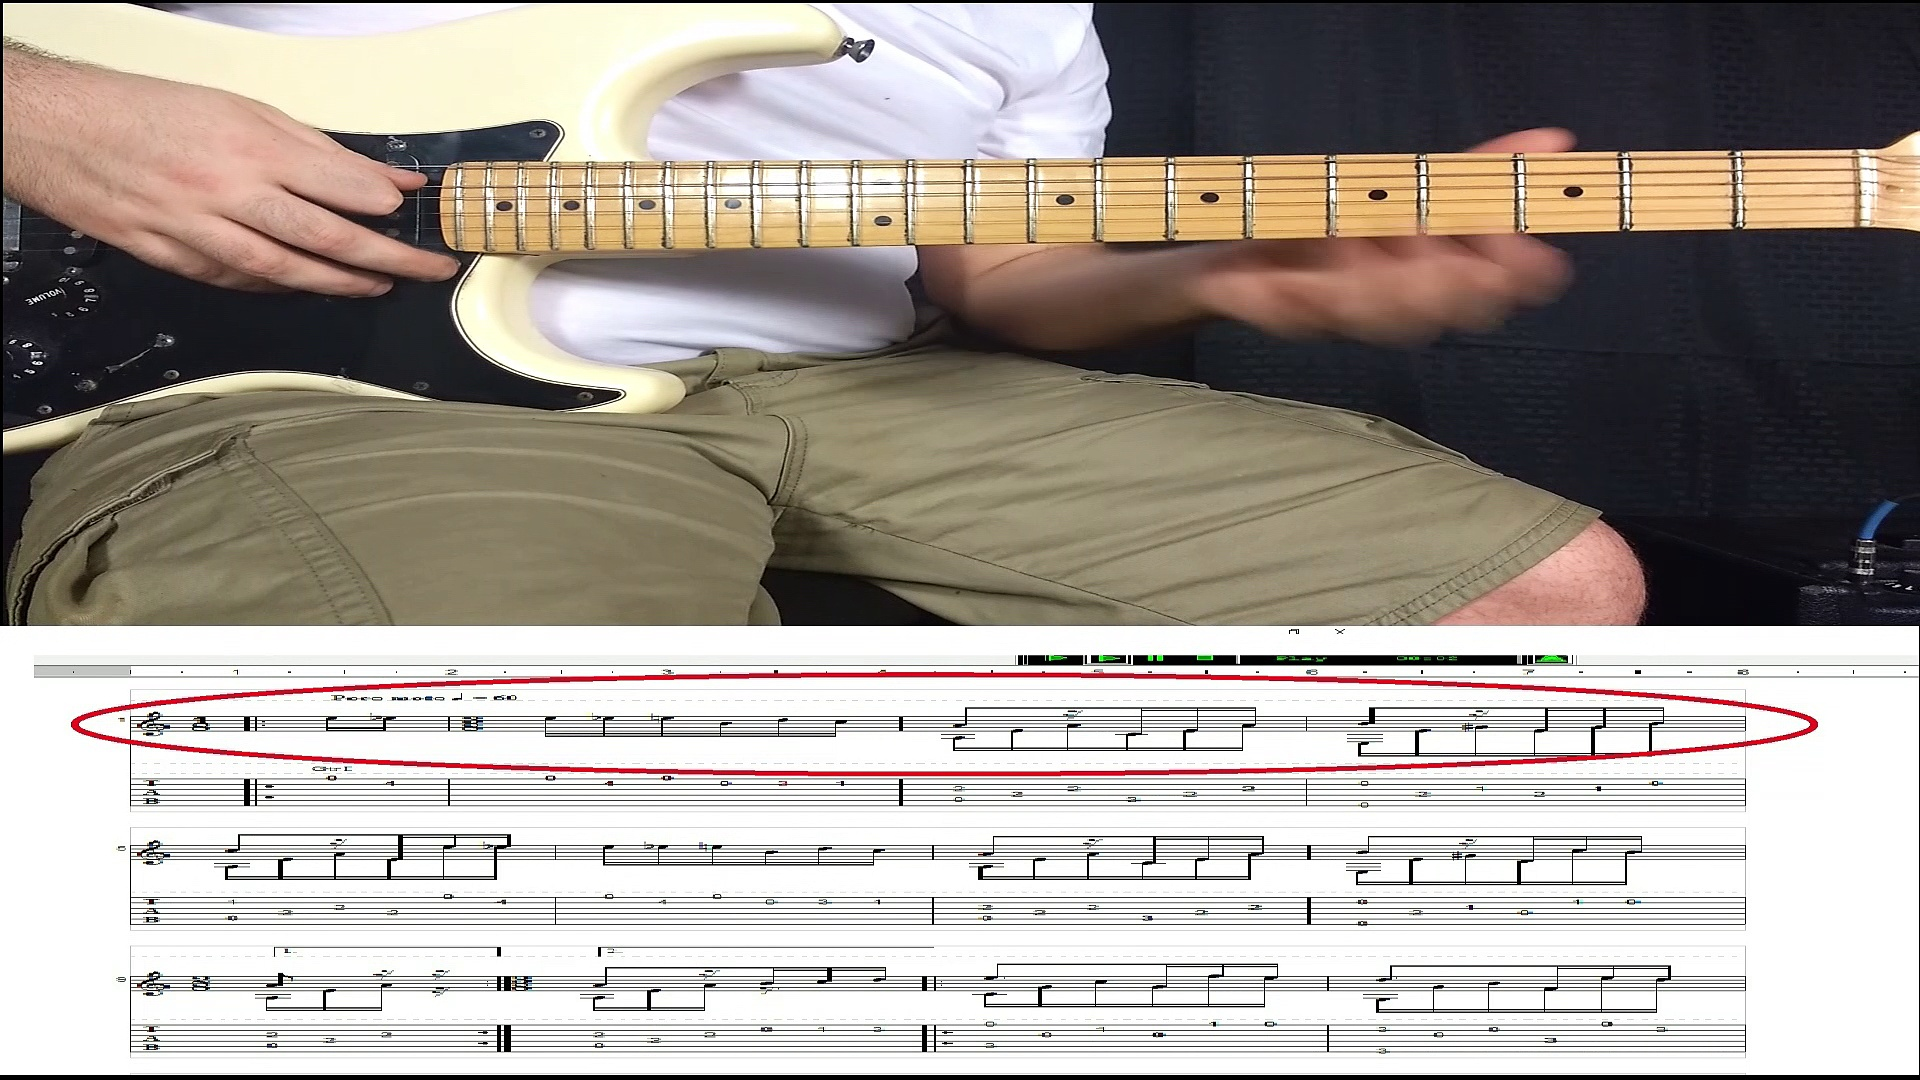 How To Read Guitar Tabs (Tablature)